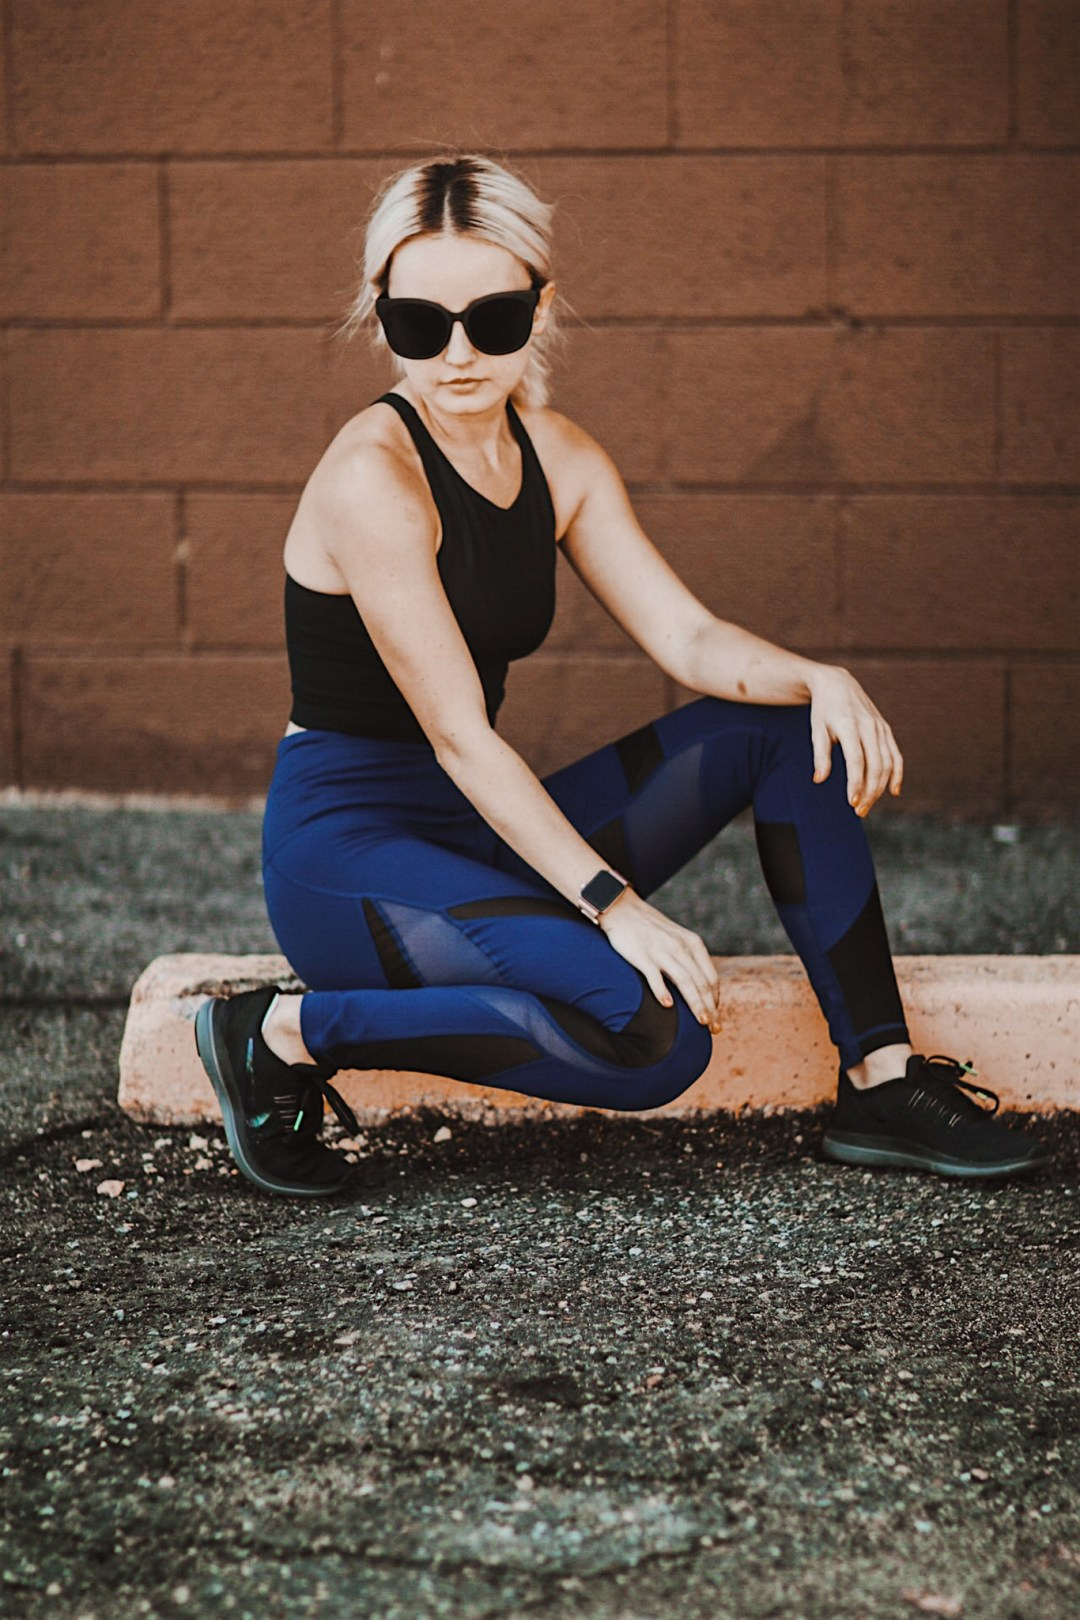 Alena Gidenko shares tips on what she does for working out and what she eats and how to stay fit